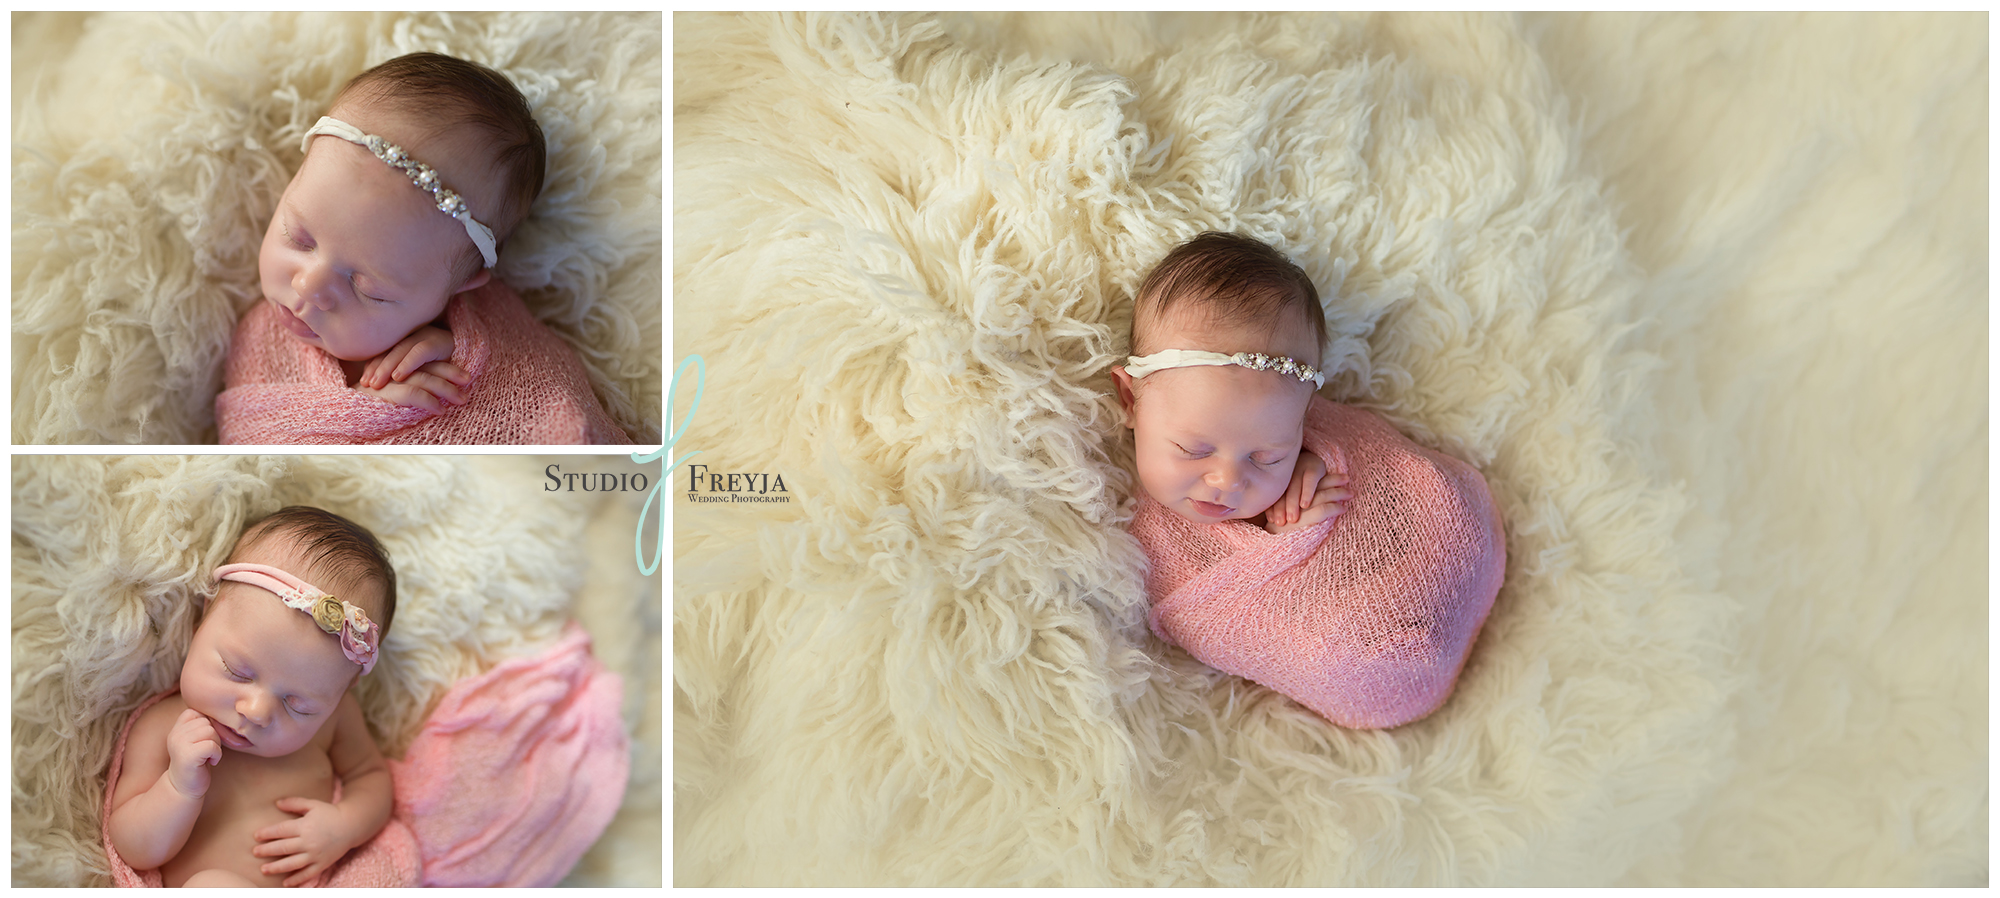 Ava's Newborn Collage from Baby Session in San Diego CA